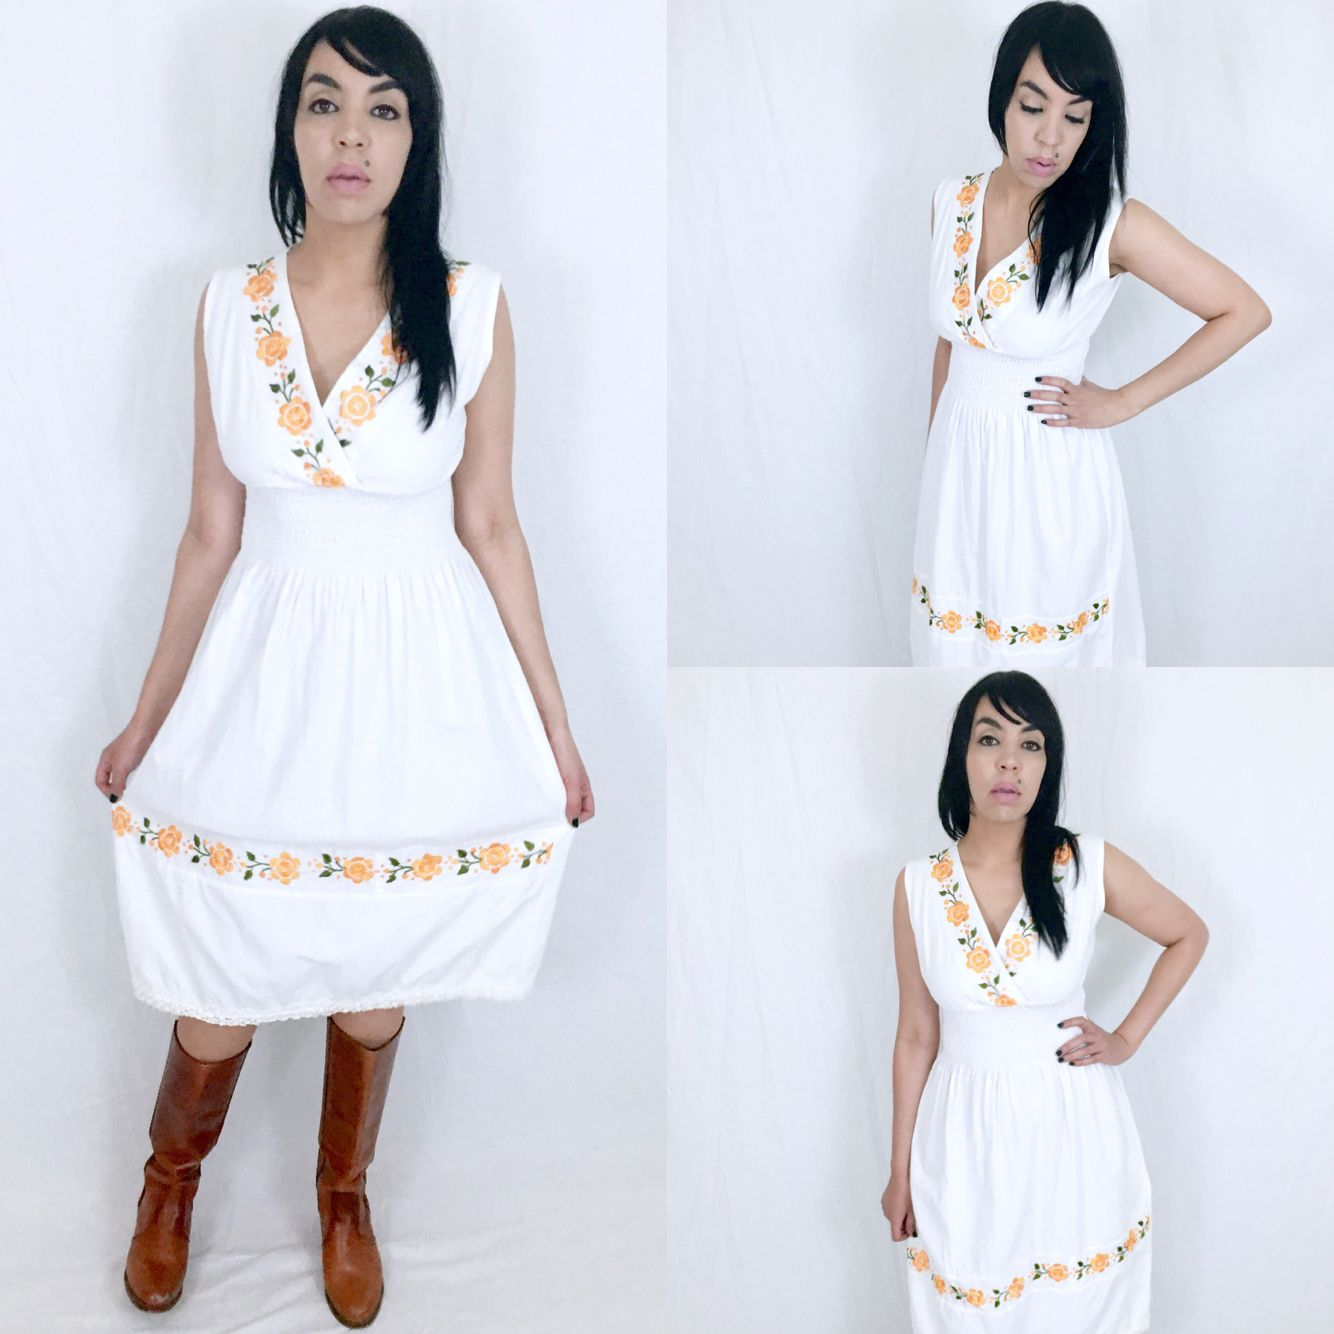 Vintage 70s White Mexican Flower Embroidered Crossover V-Neck Smocked Waist Cotton Gauze Sleeveless Sun Dress M $68.00  https://www.etsy.com/listing/464531302/vintage-70s-white-mexican-flower